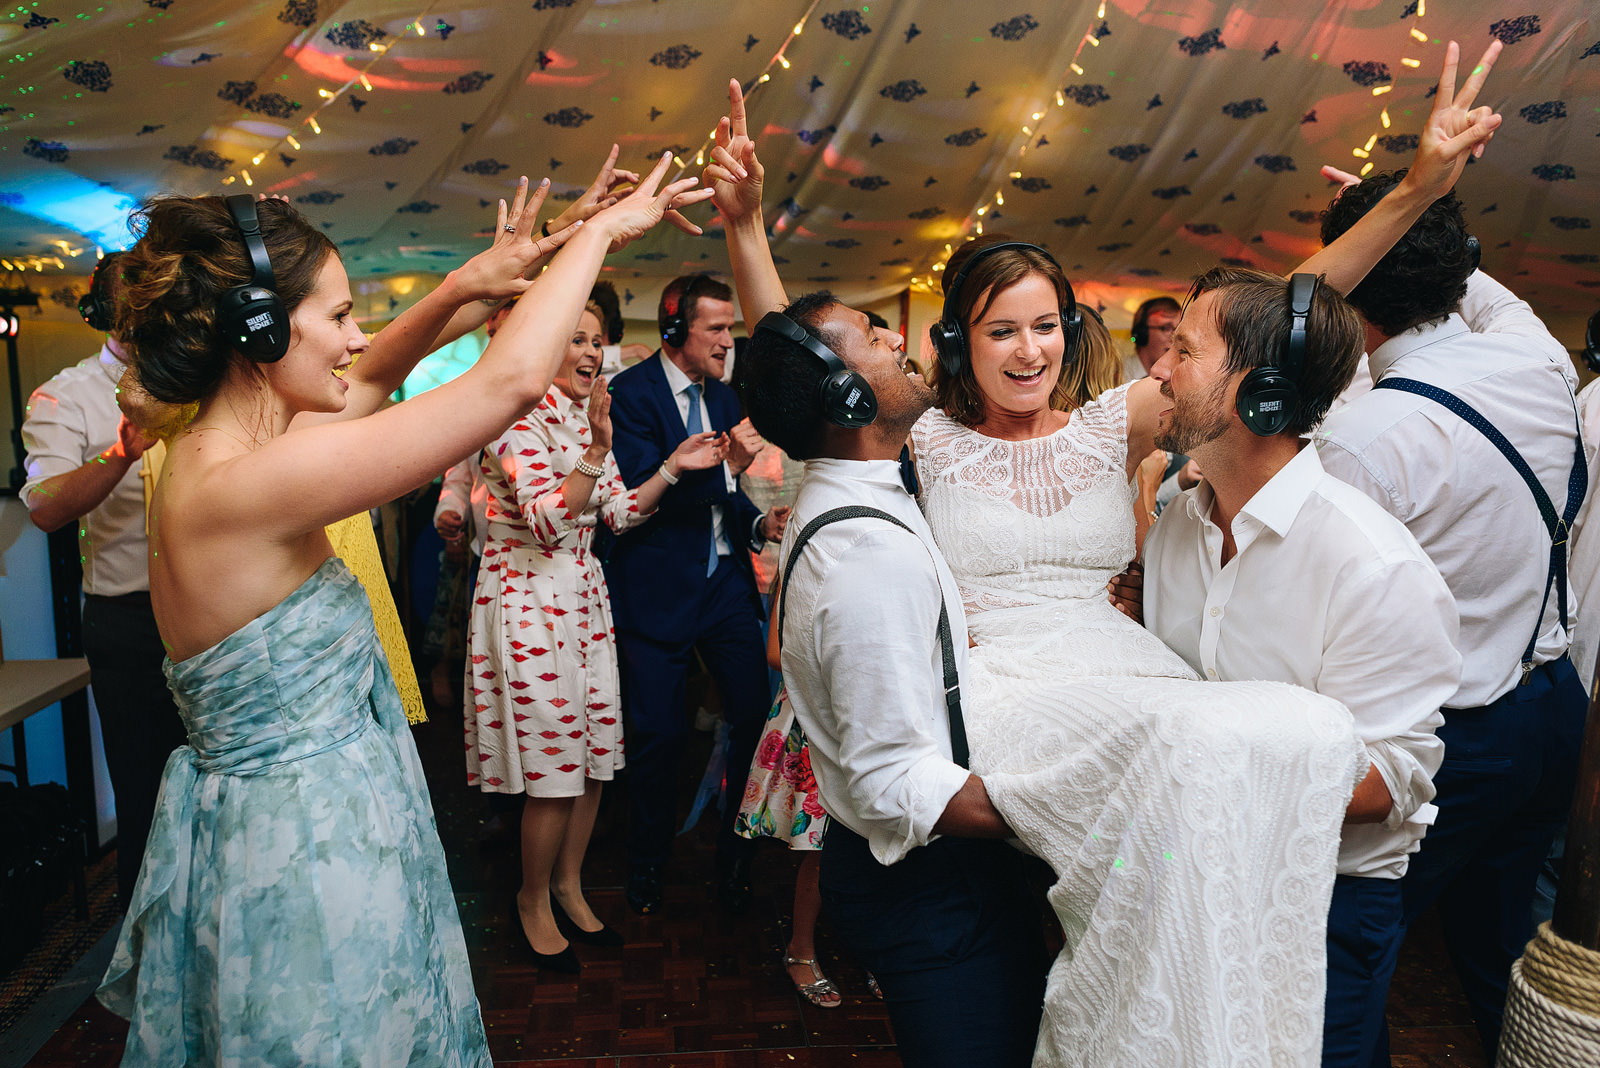 Bride celebrating with friends during silent disco at Roscarrock Farm Wedding in Cornwall